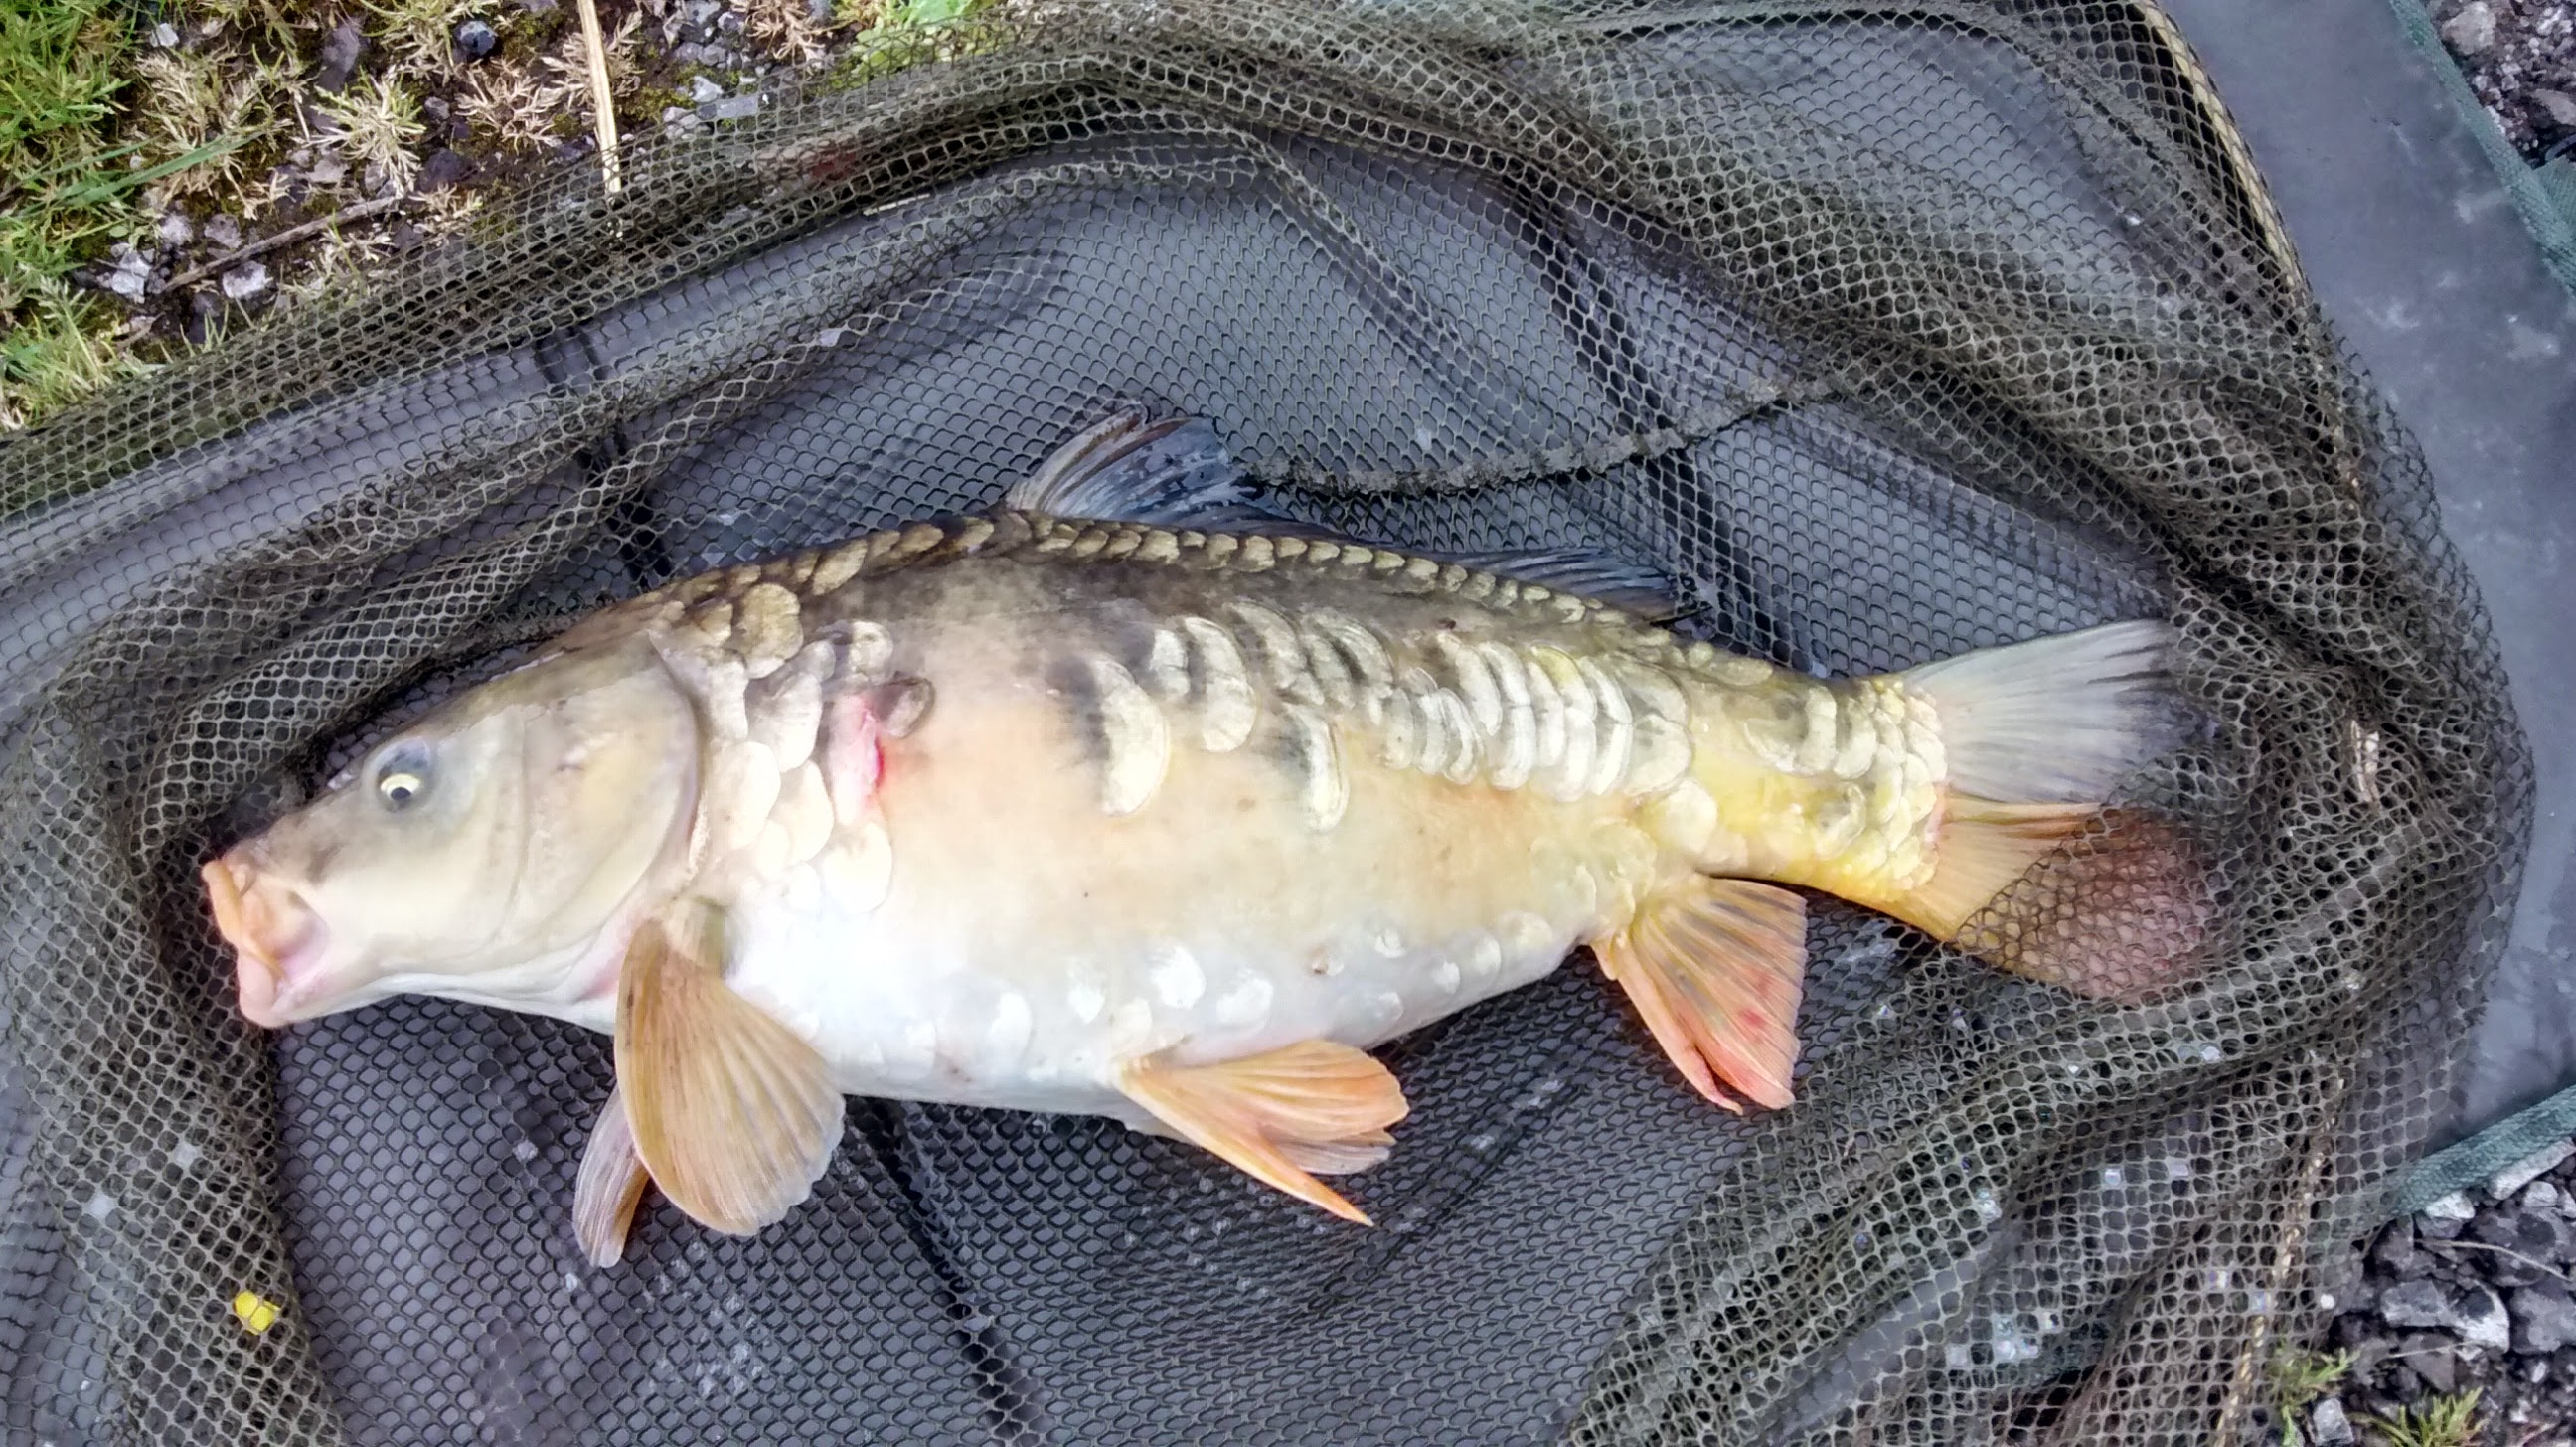 Carp 7lb 6oz. caught by Terry Mosley